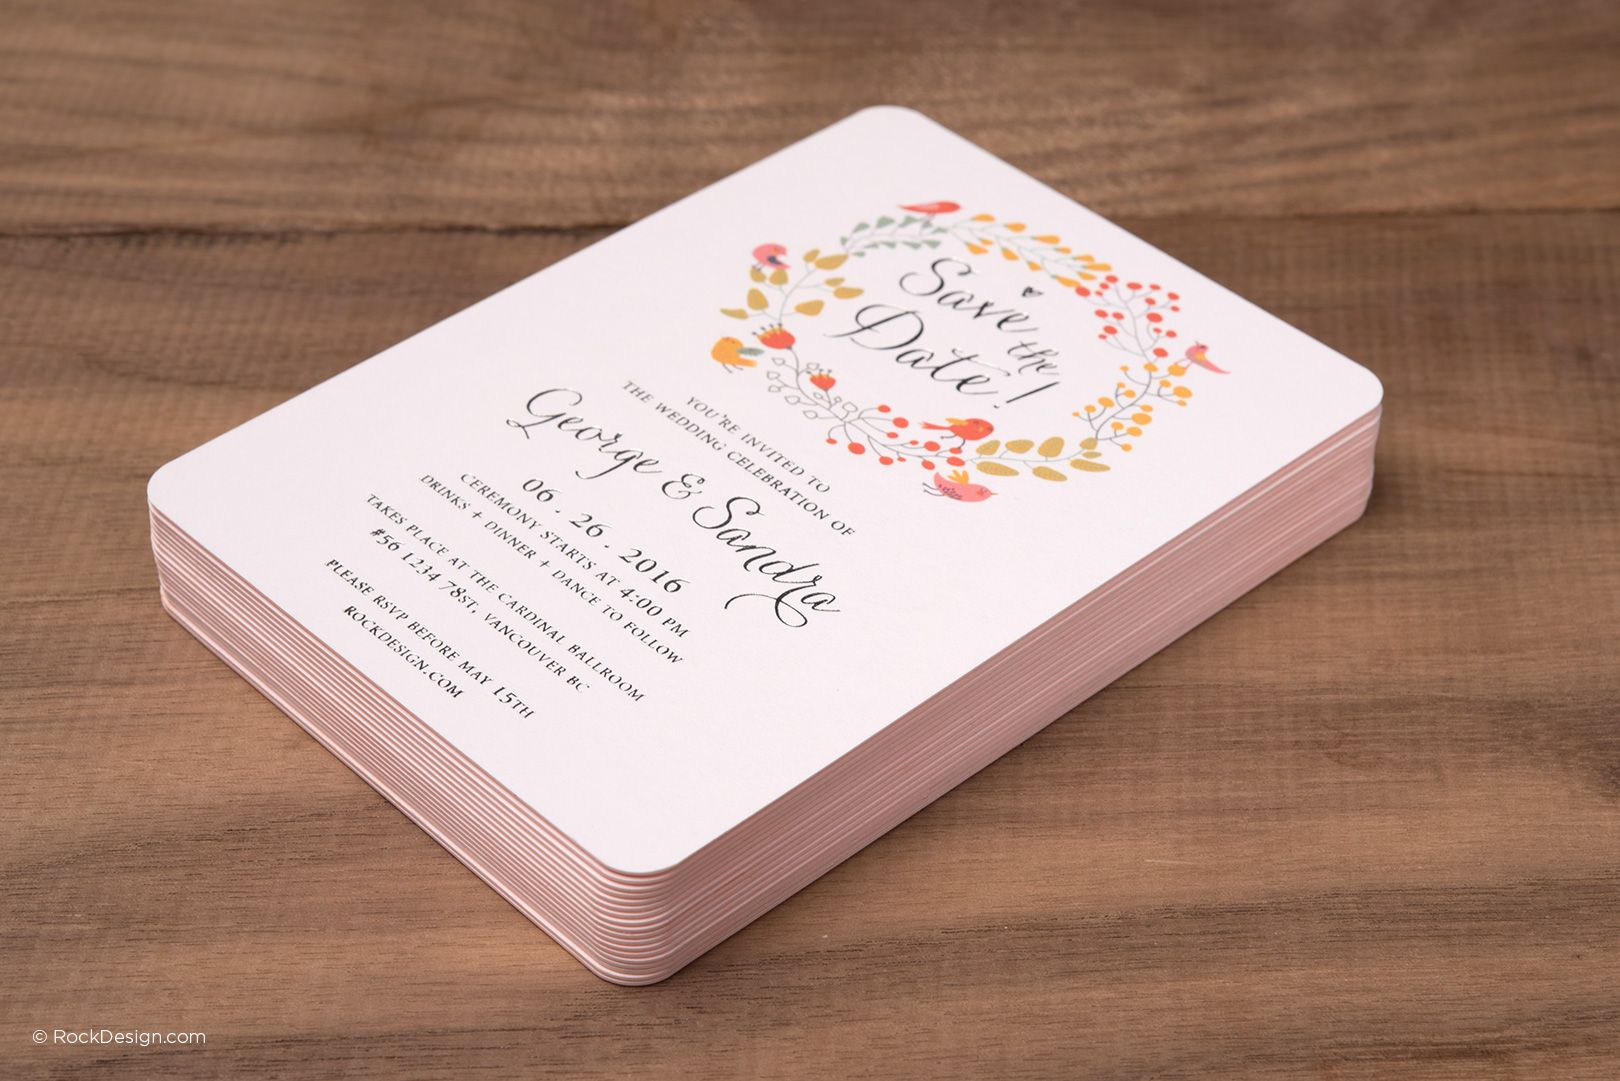 Smooth uncoated invitation cards rockdesign luxury business card high end business cards and free business cards templates magicingreecefo Choice Image